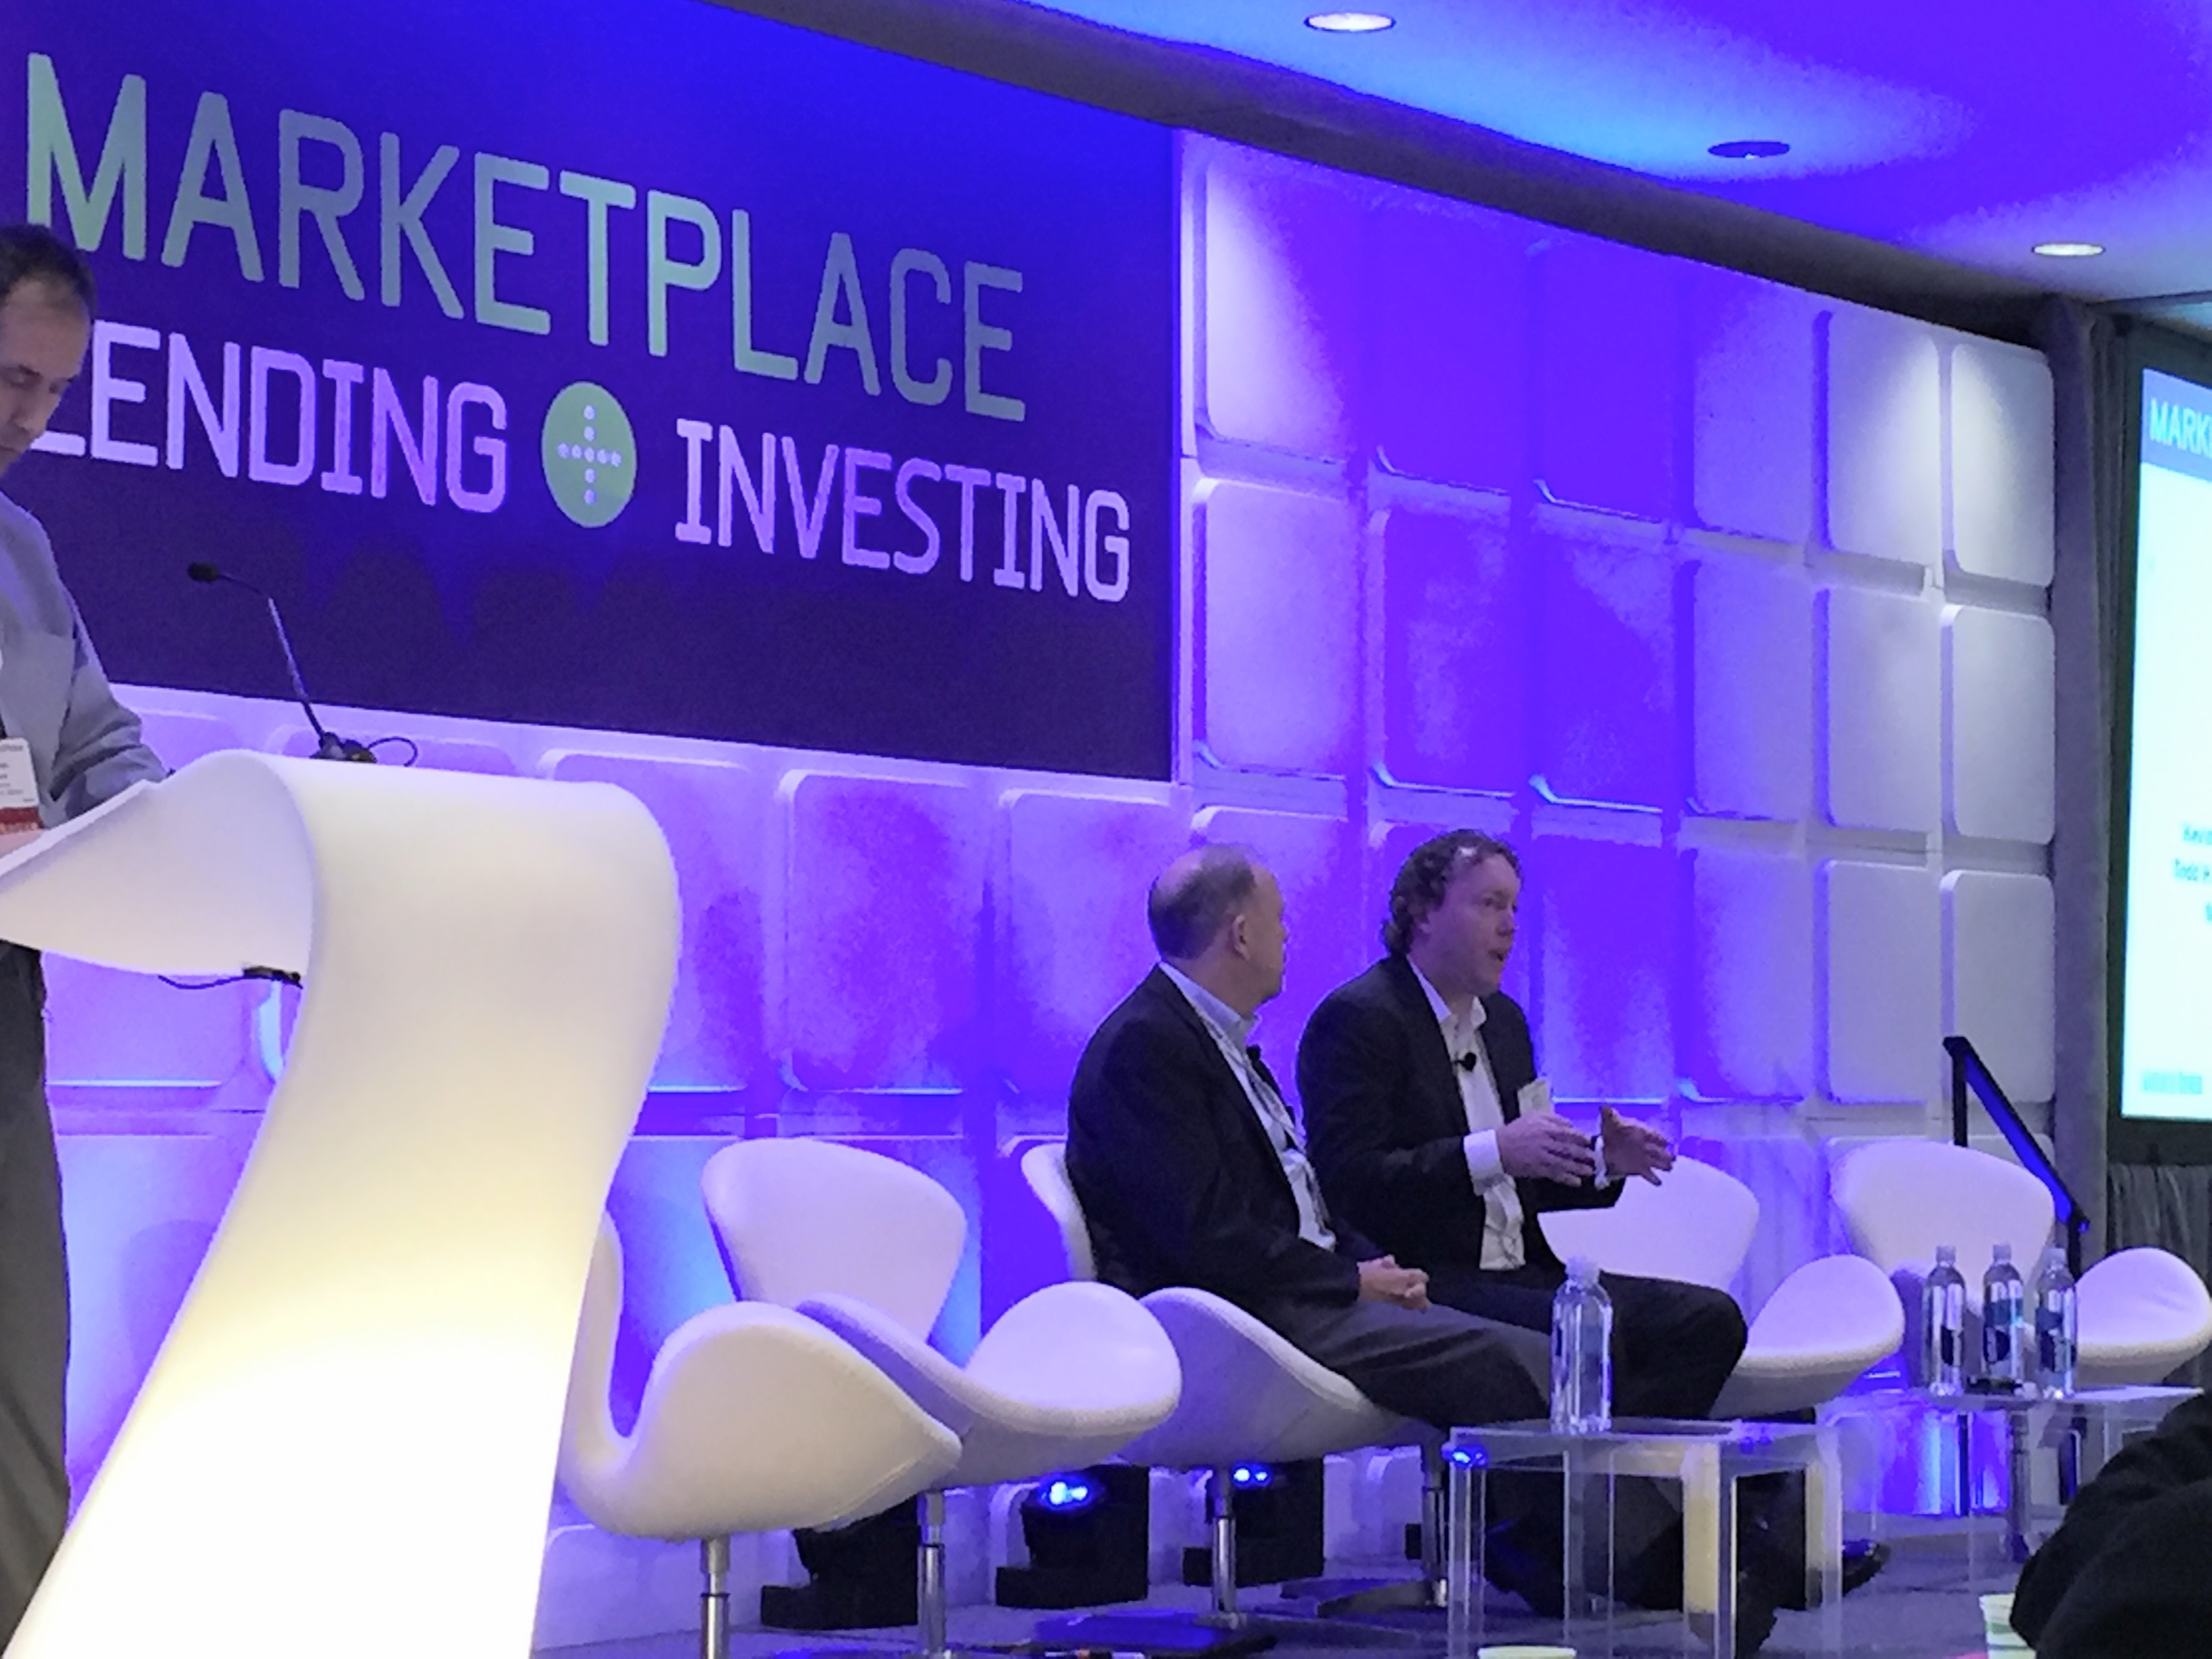 Mike Cagney Todd Baker Face Off at Marketplace Lending and Investing